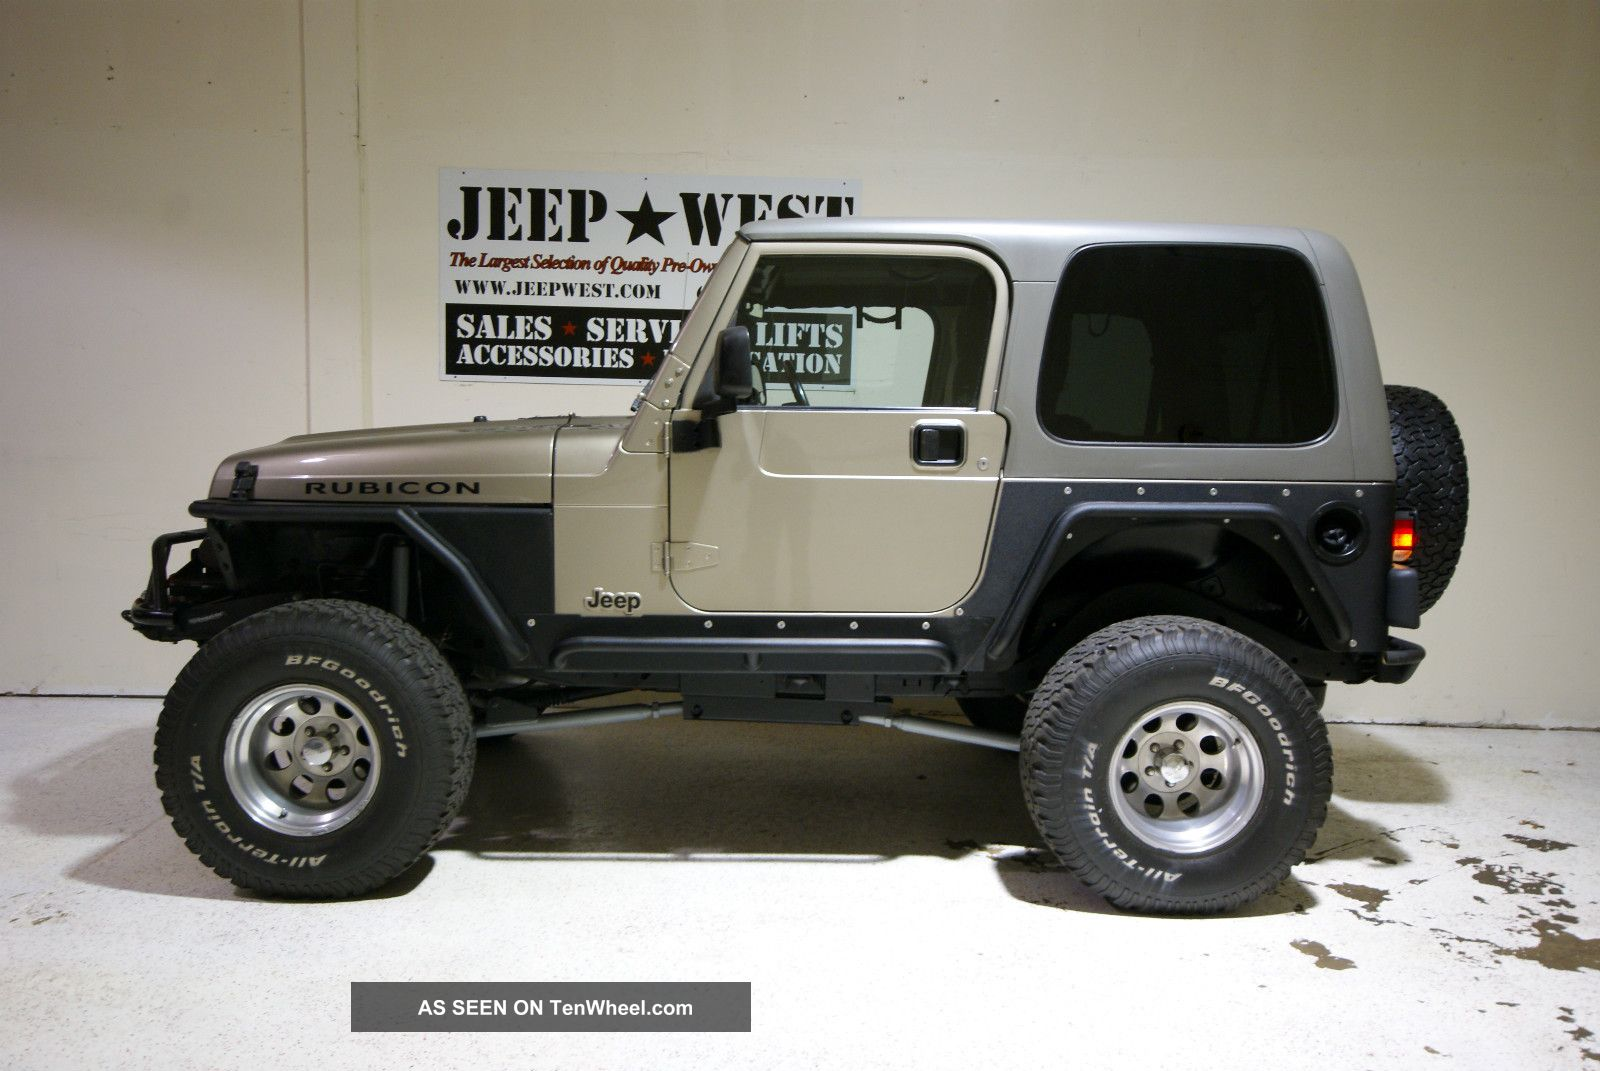 2005 jeep wrangler rubicon. Black Bedroom Furniture Sets. Home Design Ideas